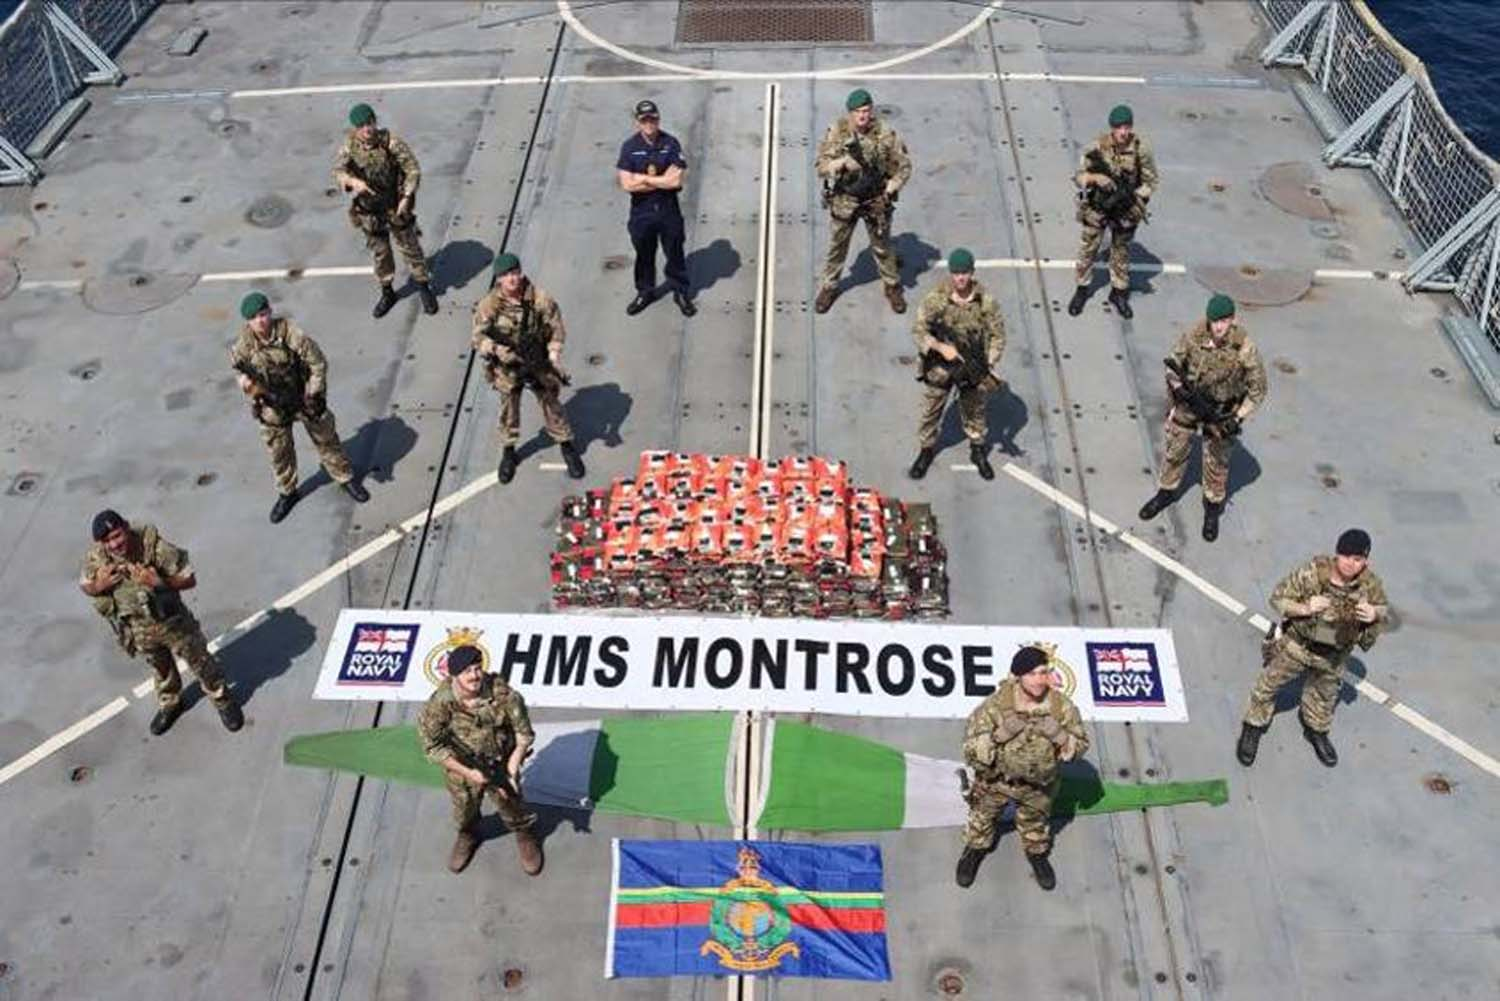 The boarding team from HMS Montrose, standing with the 450KG of methamphetamine seized during an operation in the Gulf